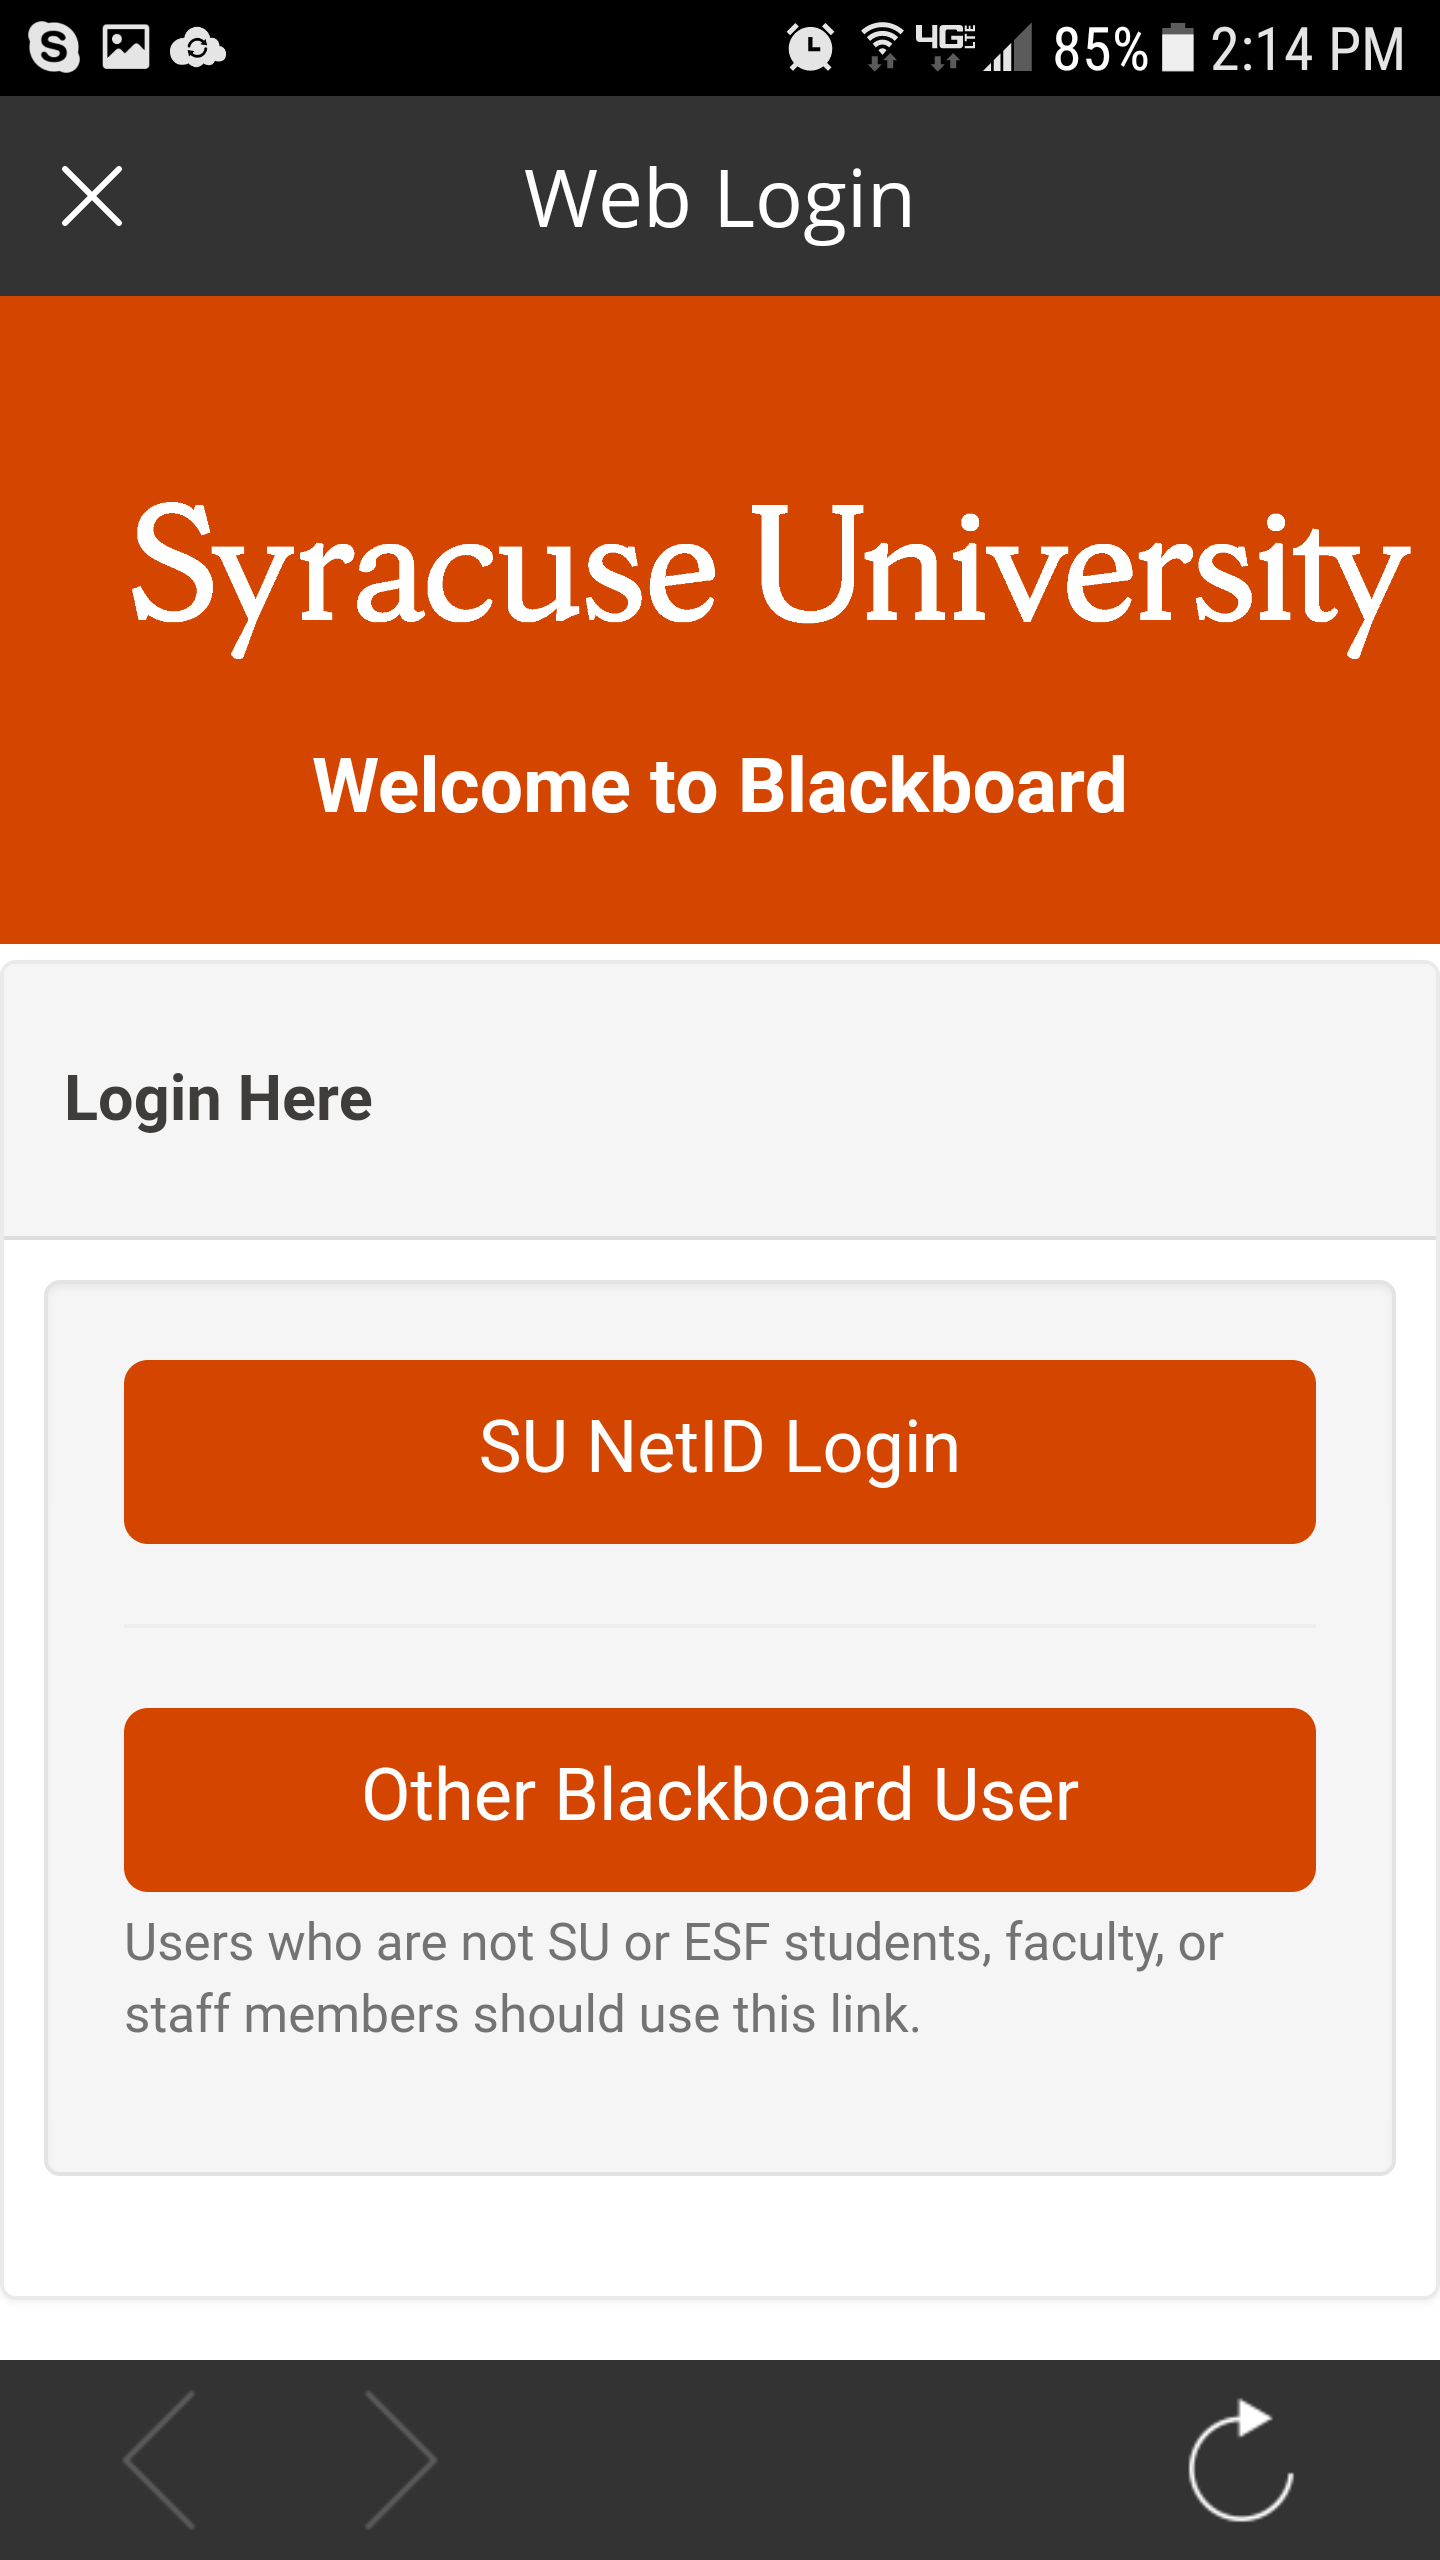 Syracuse University Blackboard Screen Log-in